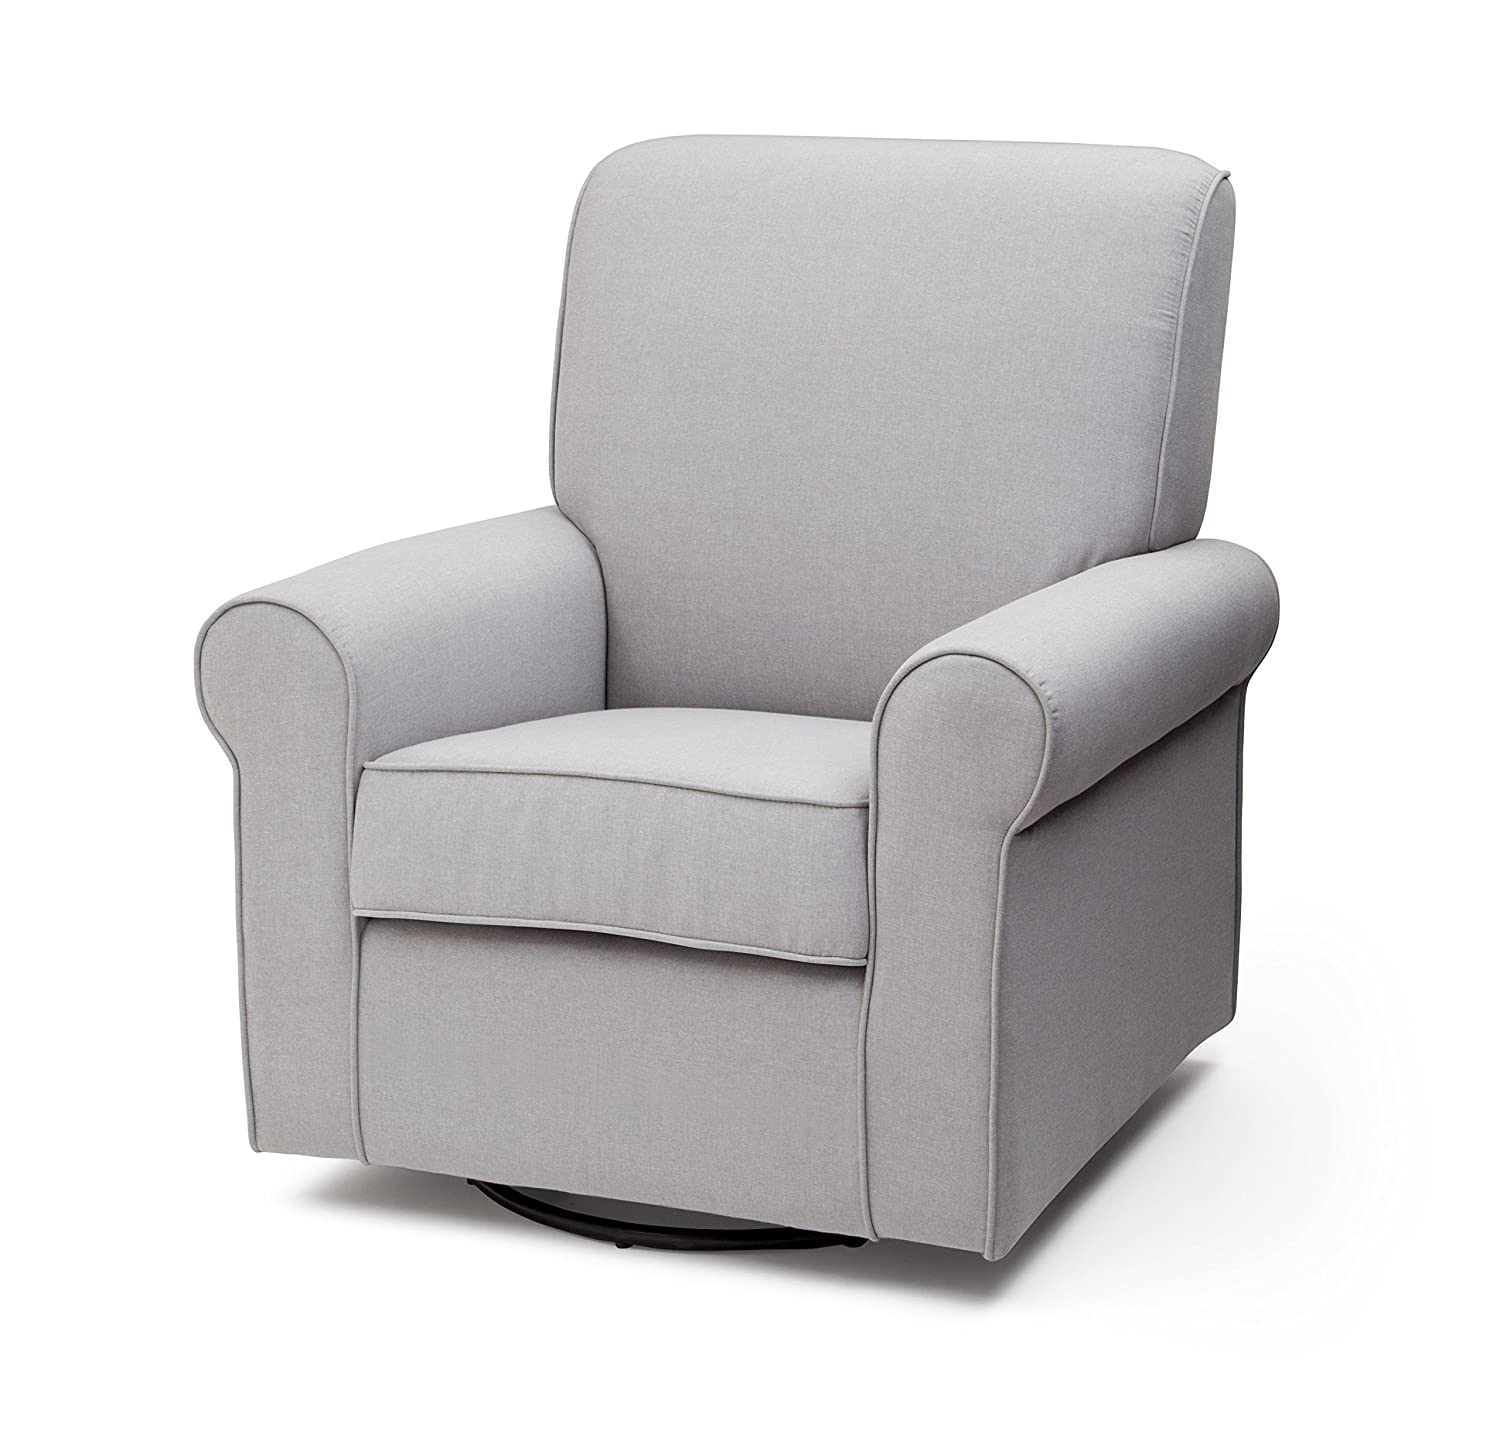 Charmant Amazon.com: Delta Children Avery Upholstered Glider Swivel Rocker Chair,  Heather Grey: Baby